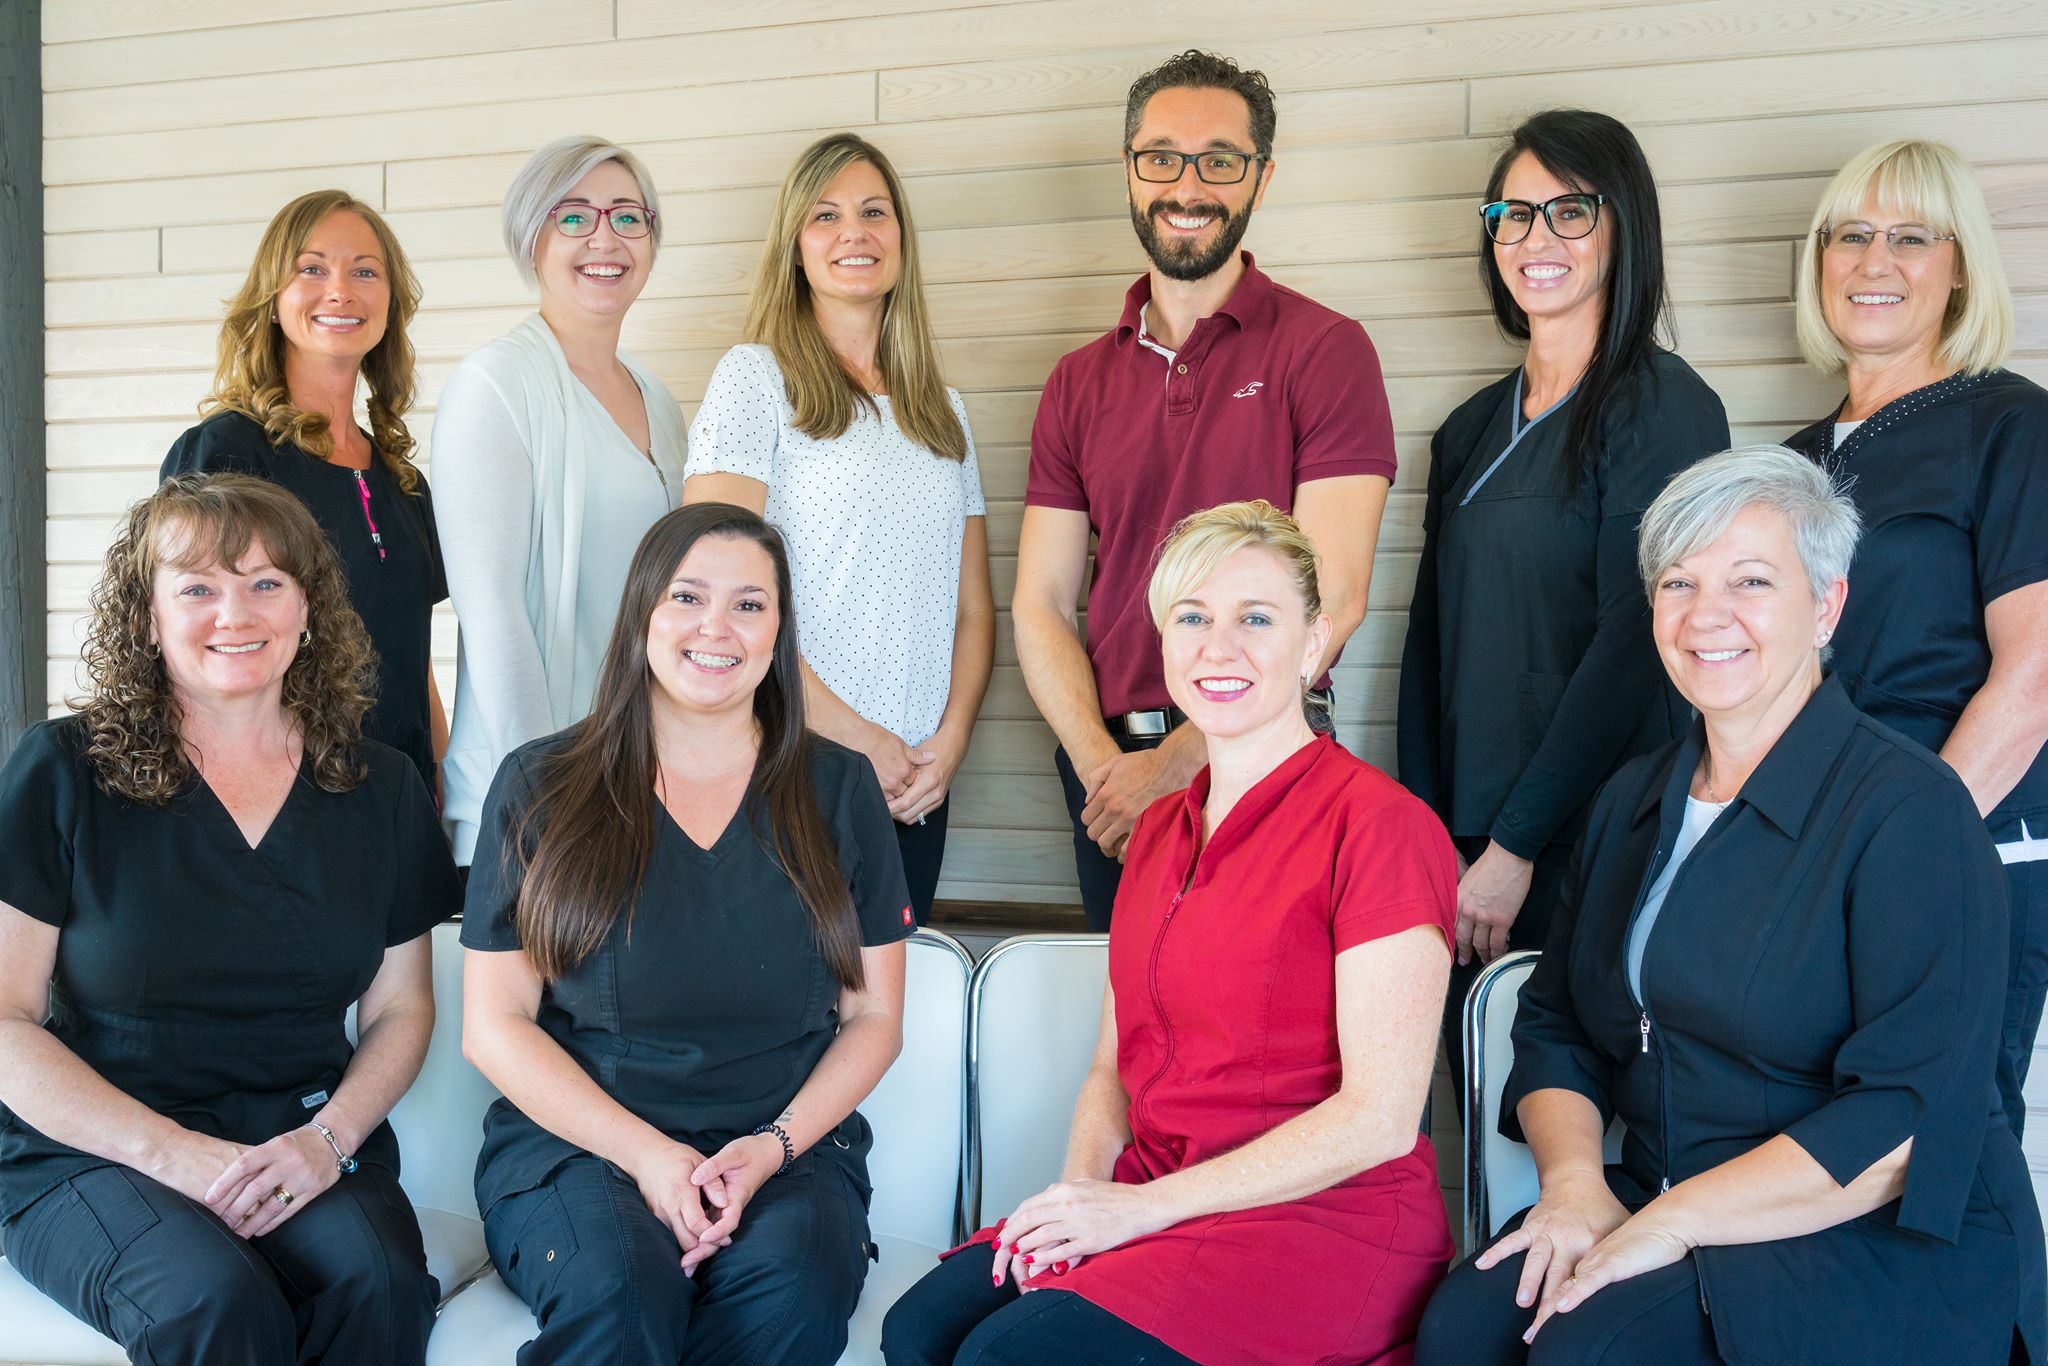 Monashee Dental Centre - Dr Paula Winsor-Lee - Lumby BC - The Team - 10